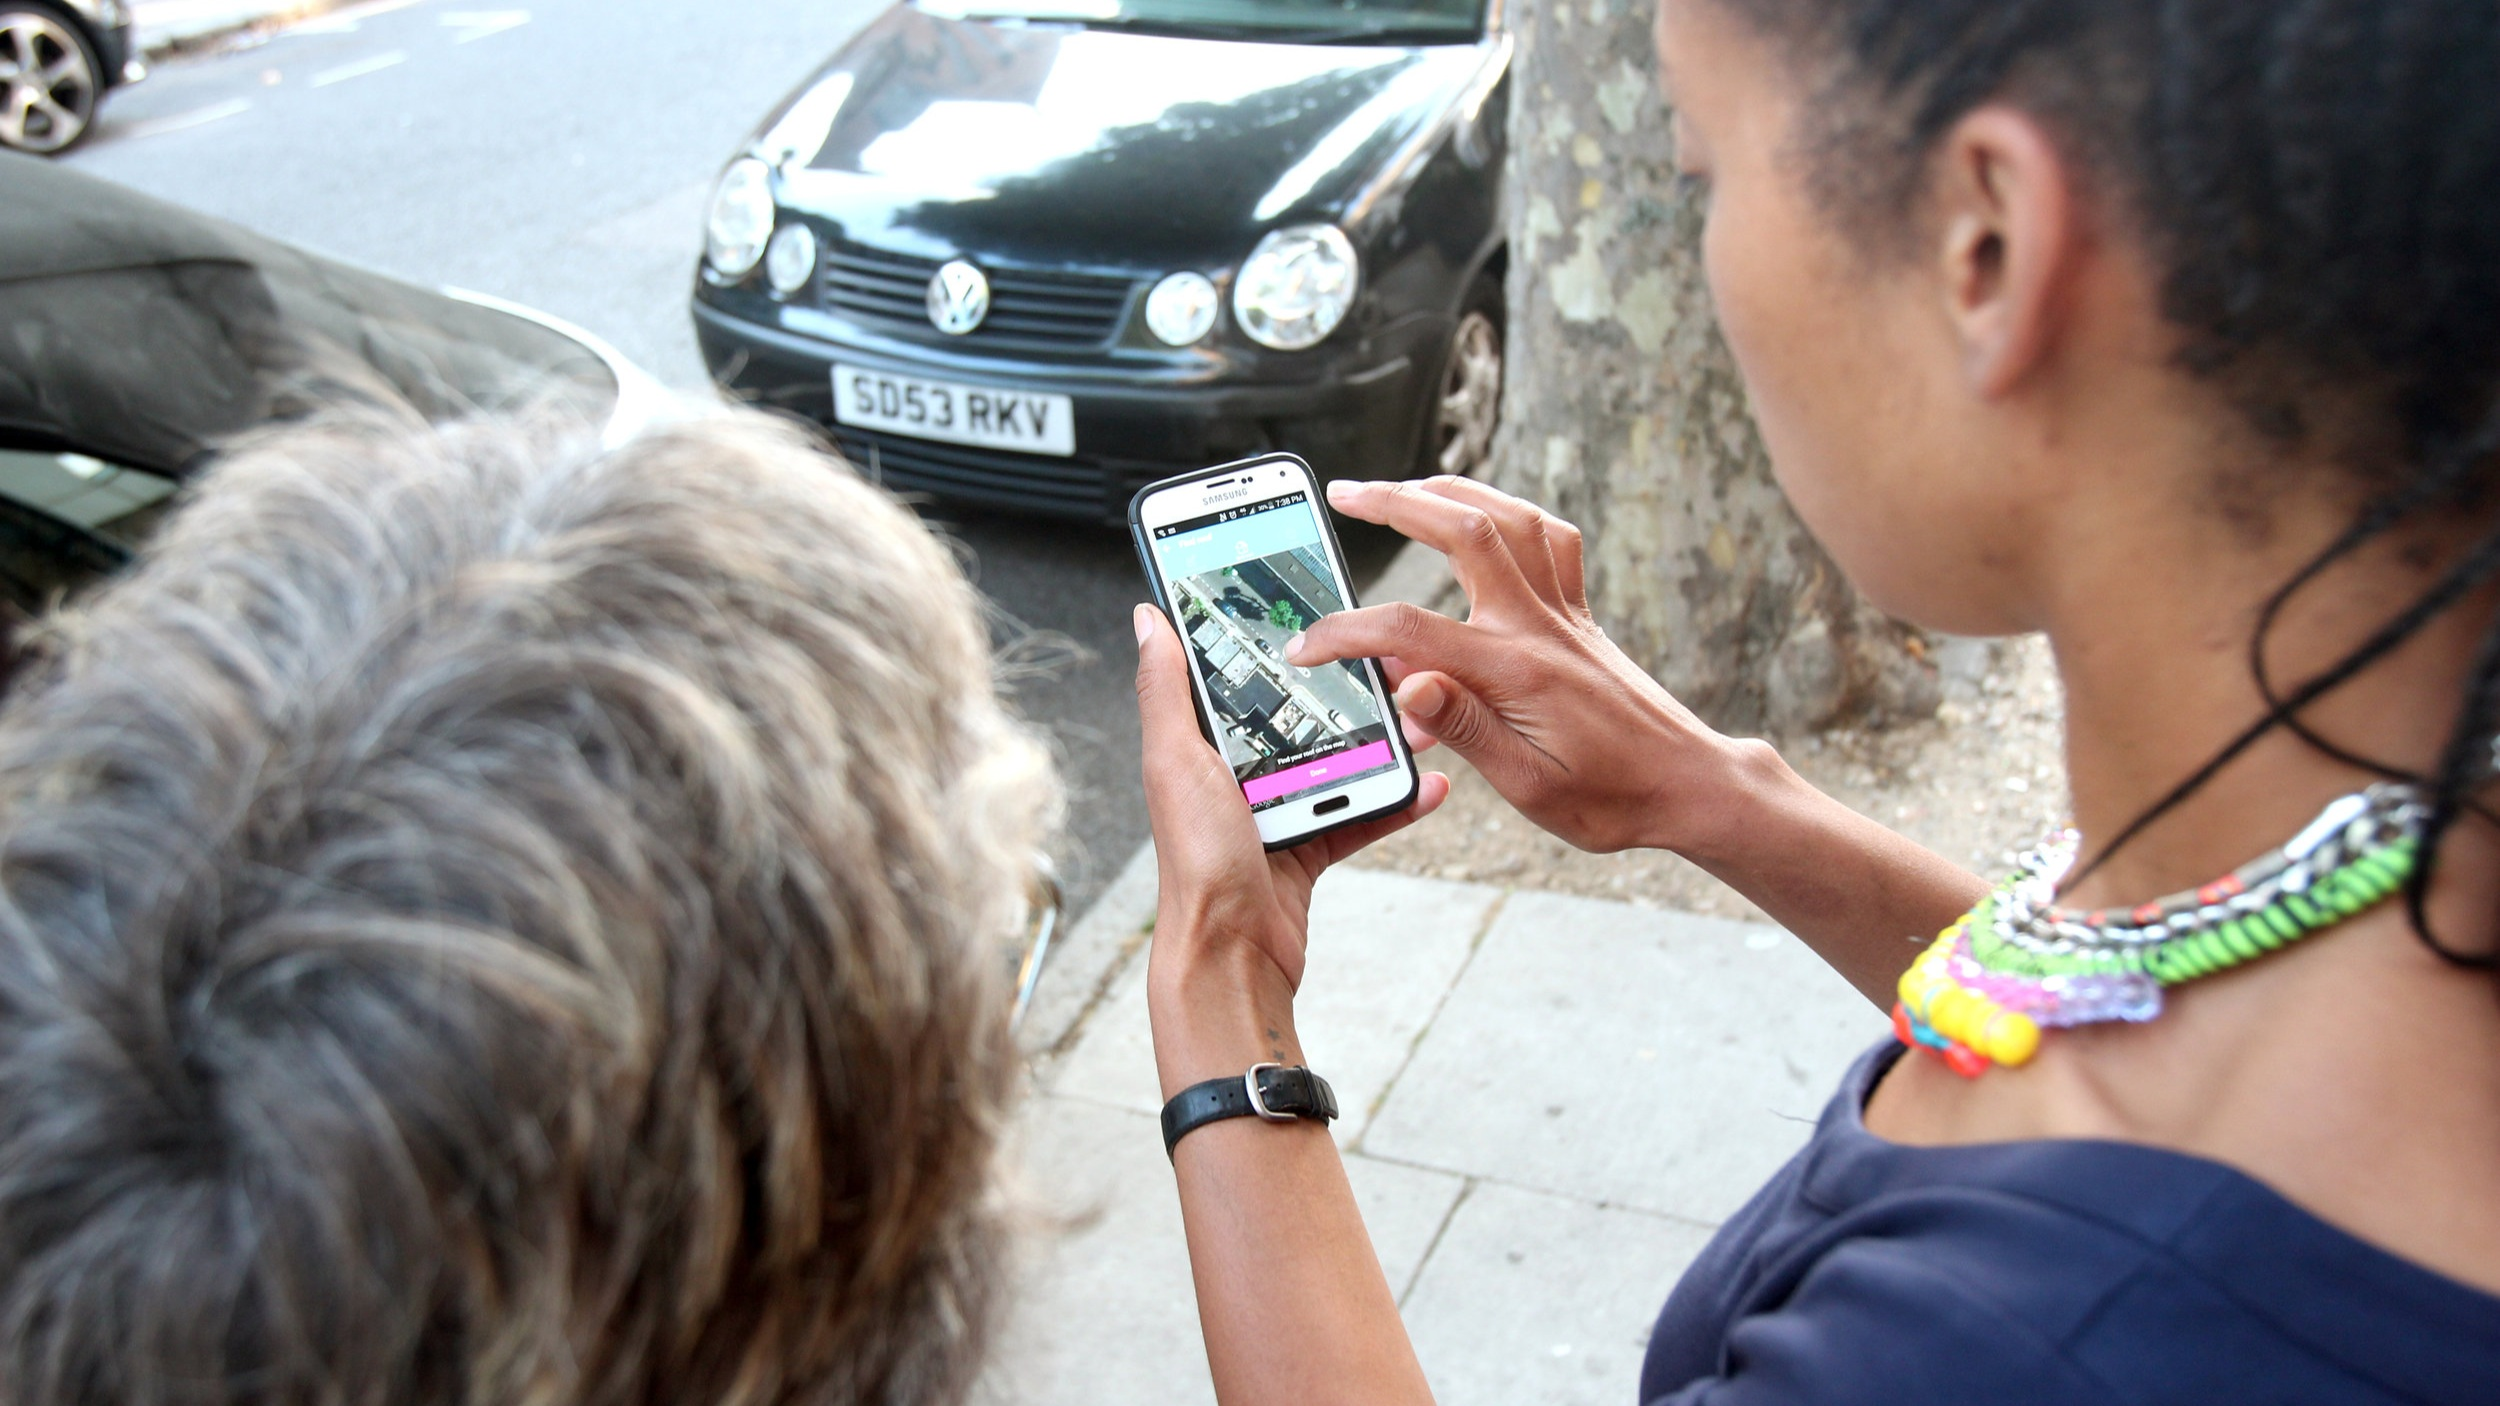 young woman uses app on phone as older woman looks on